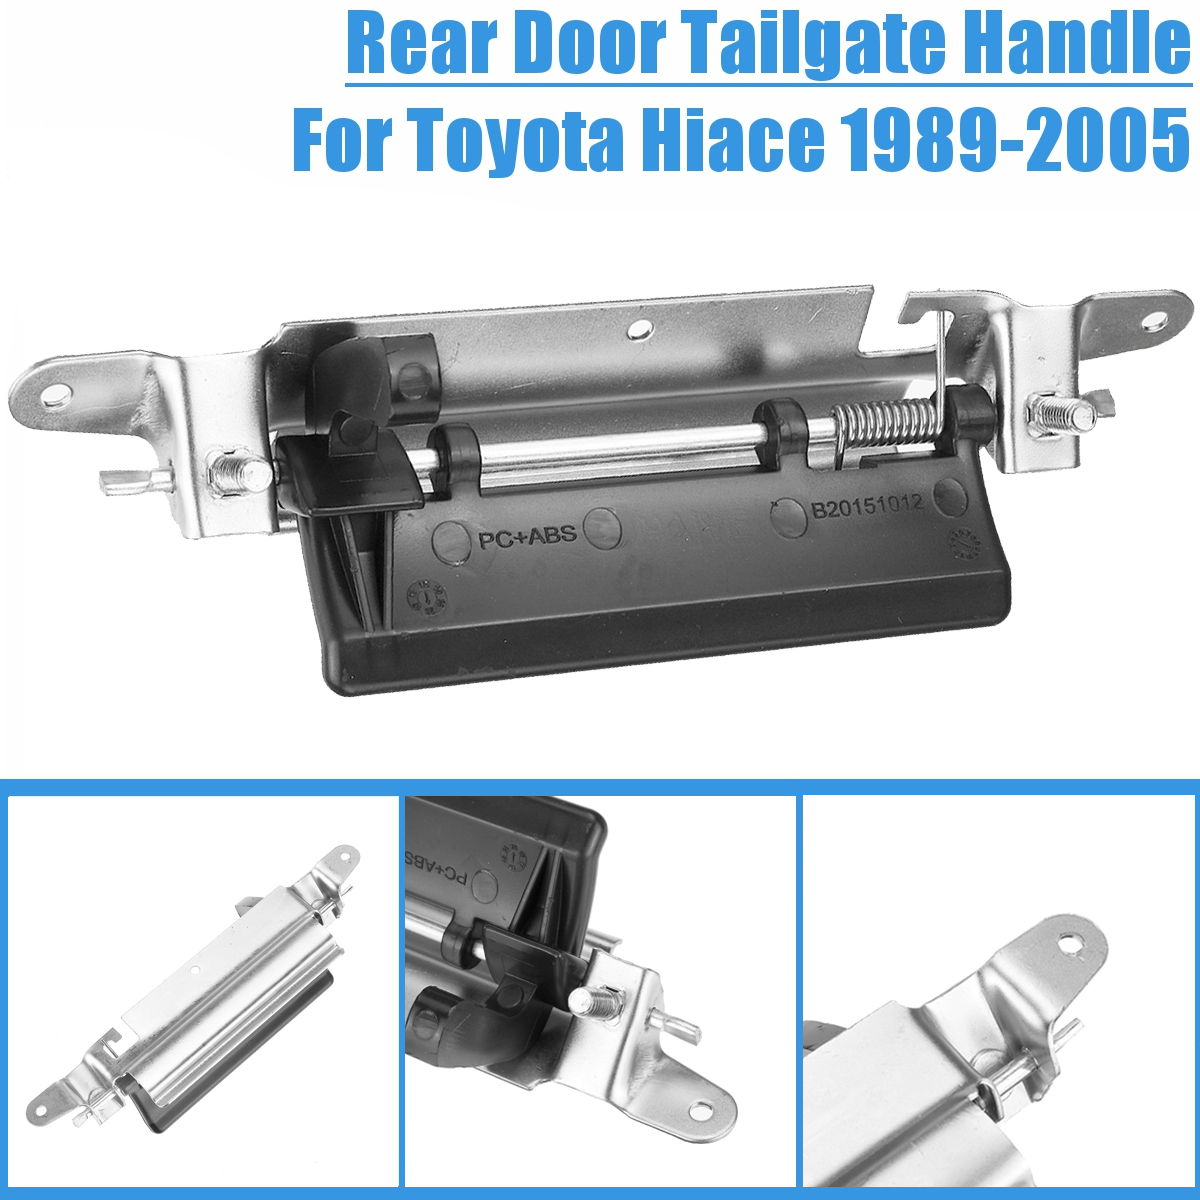 TYJ9150NAC Tail Gate Rear Door Tailgate Handle For Toyota Hiace 1989-2005 Car Exterior Parts